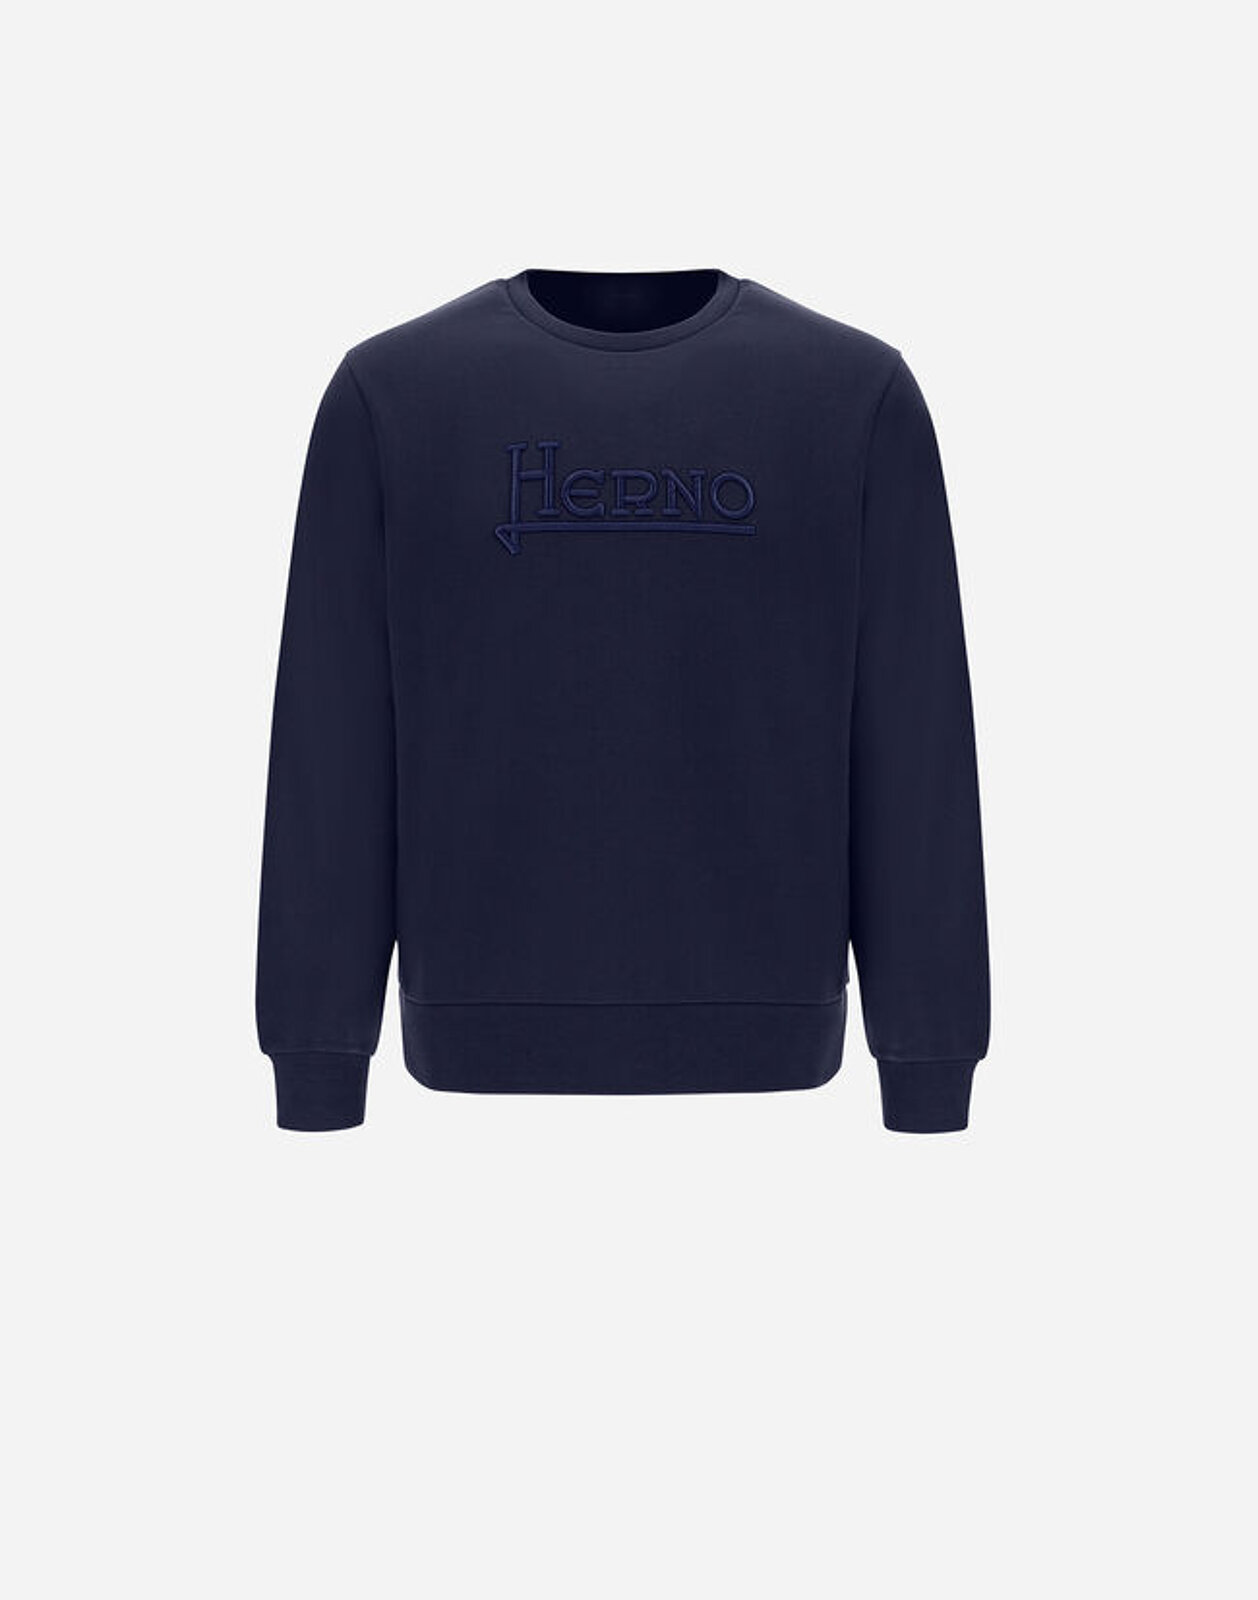 Cotton Sweatshirt With Embroidery - Herno